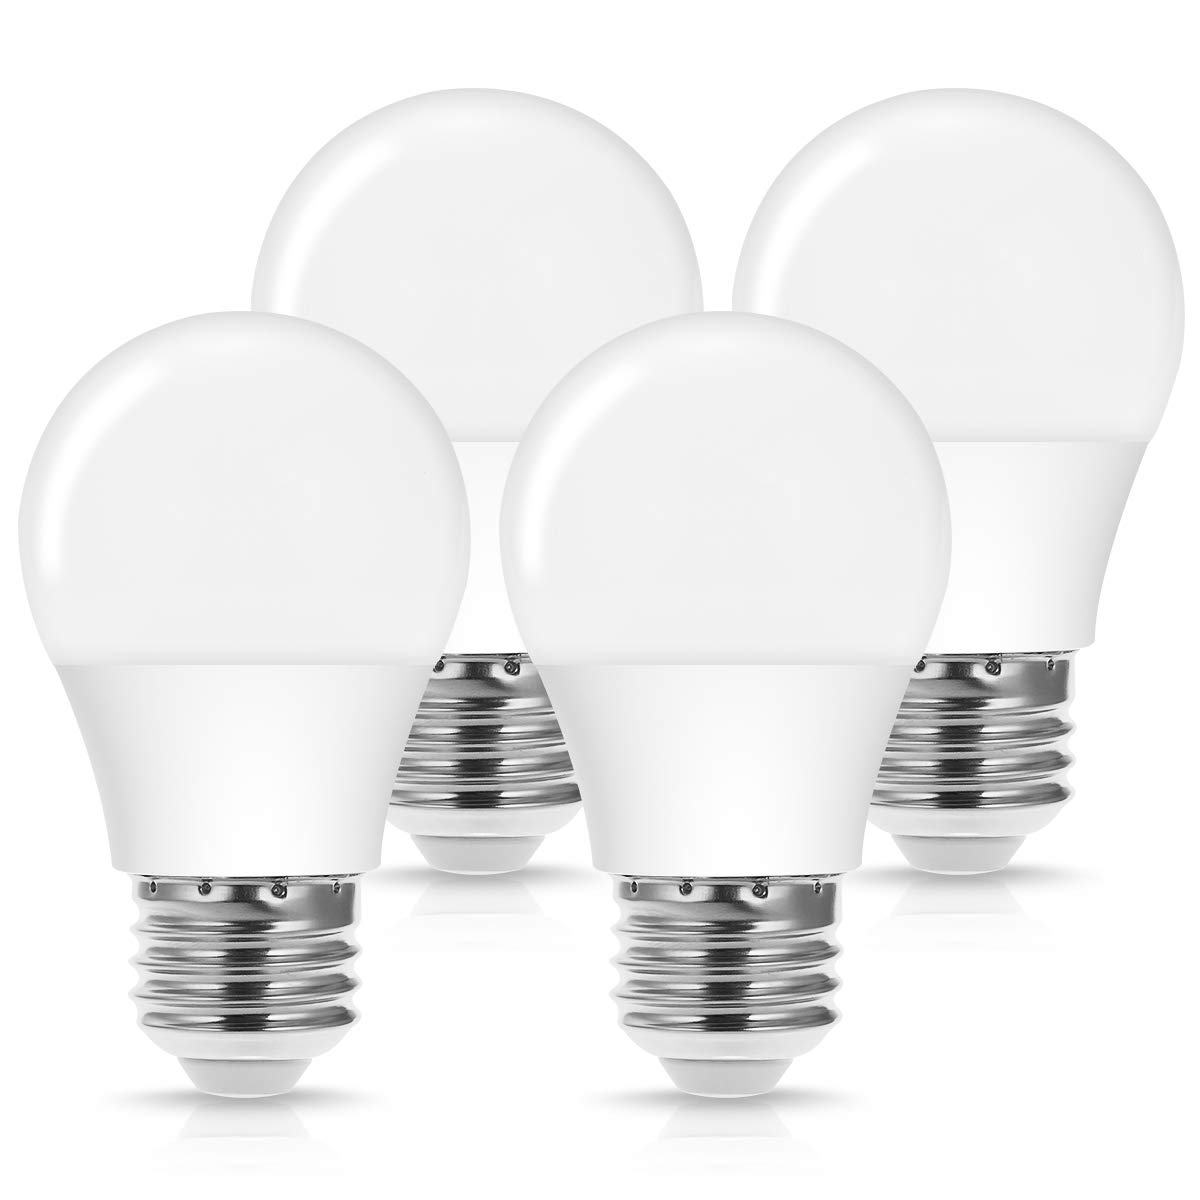 A15 E26 LED Bulb, JandCase 40W Equivalent Light Bulbs, 4W, Daylight White 5000k, 400LM, Refrigerator Freezer Bulb, Home/Office Lighting for Ceiling Fan, Bathroom, Not Dimmable, MediumBase, Pack of 4